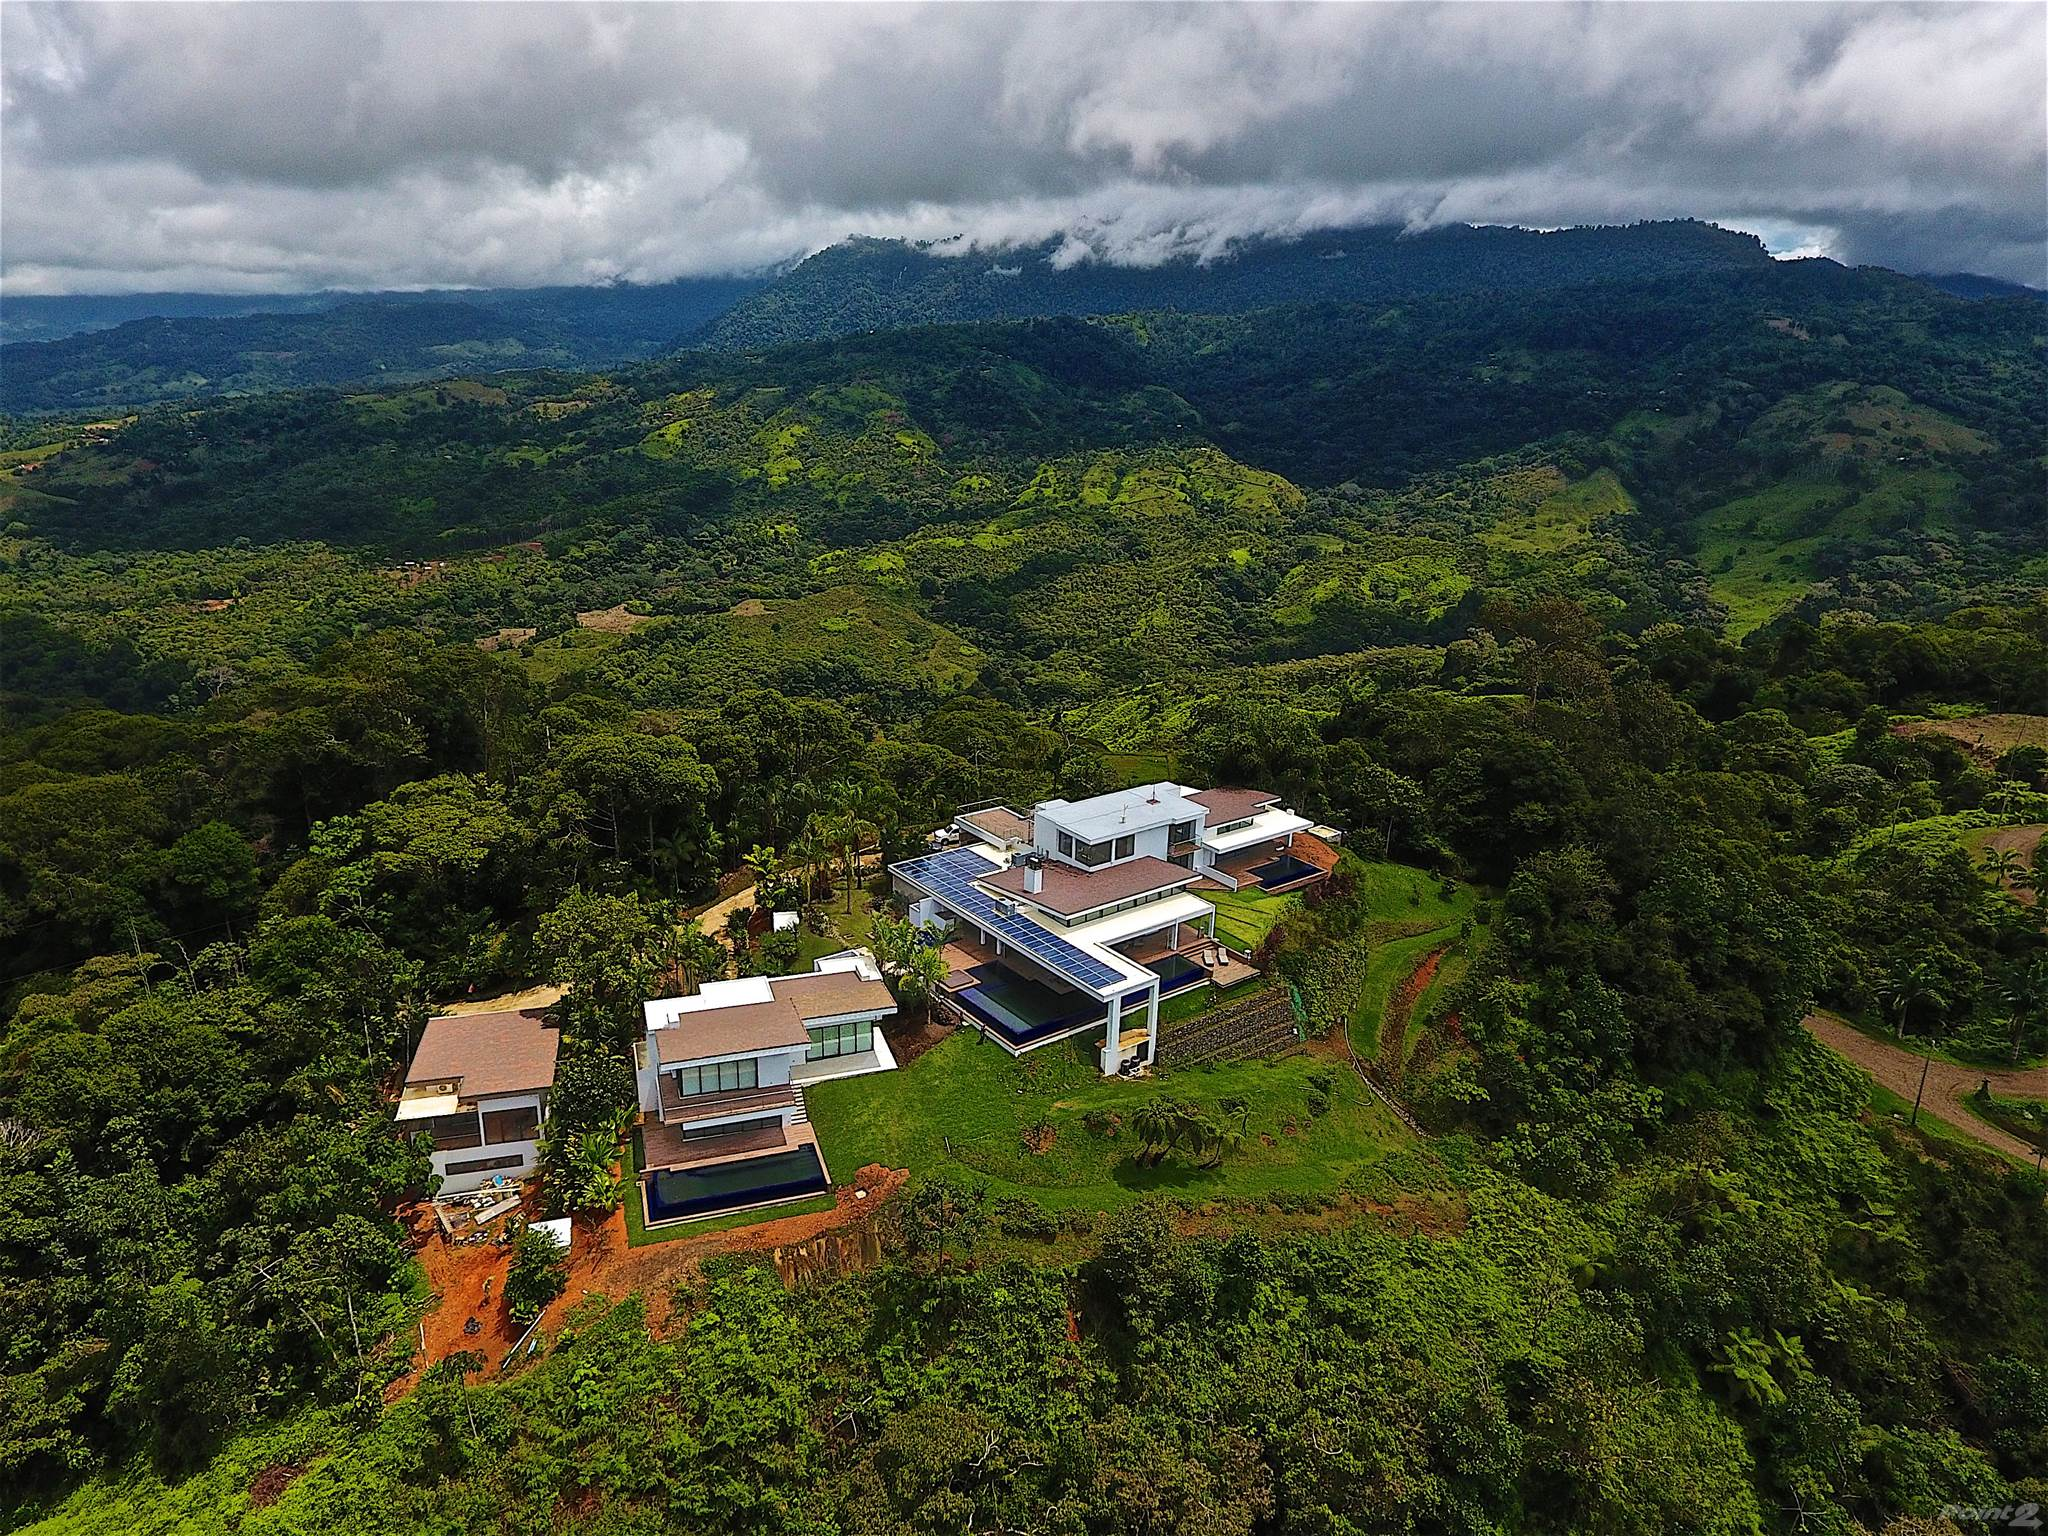 Residenziale in Chateau Montage, ID: 17OL13, Dominicalito, Puntarenas ,60504  , Costa Rica